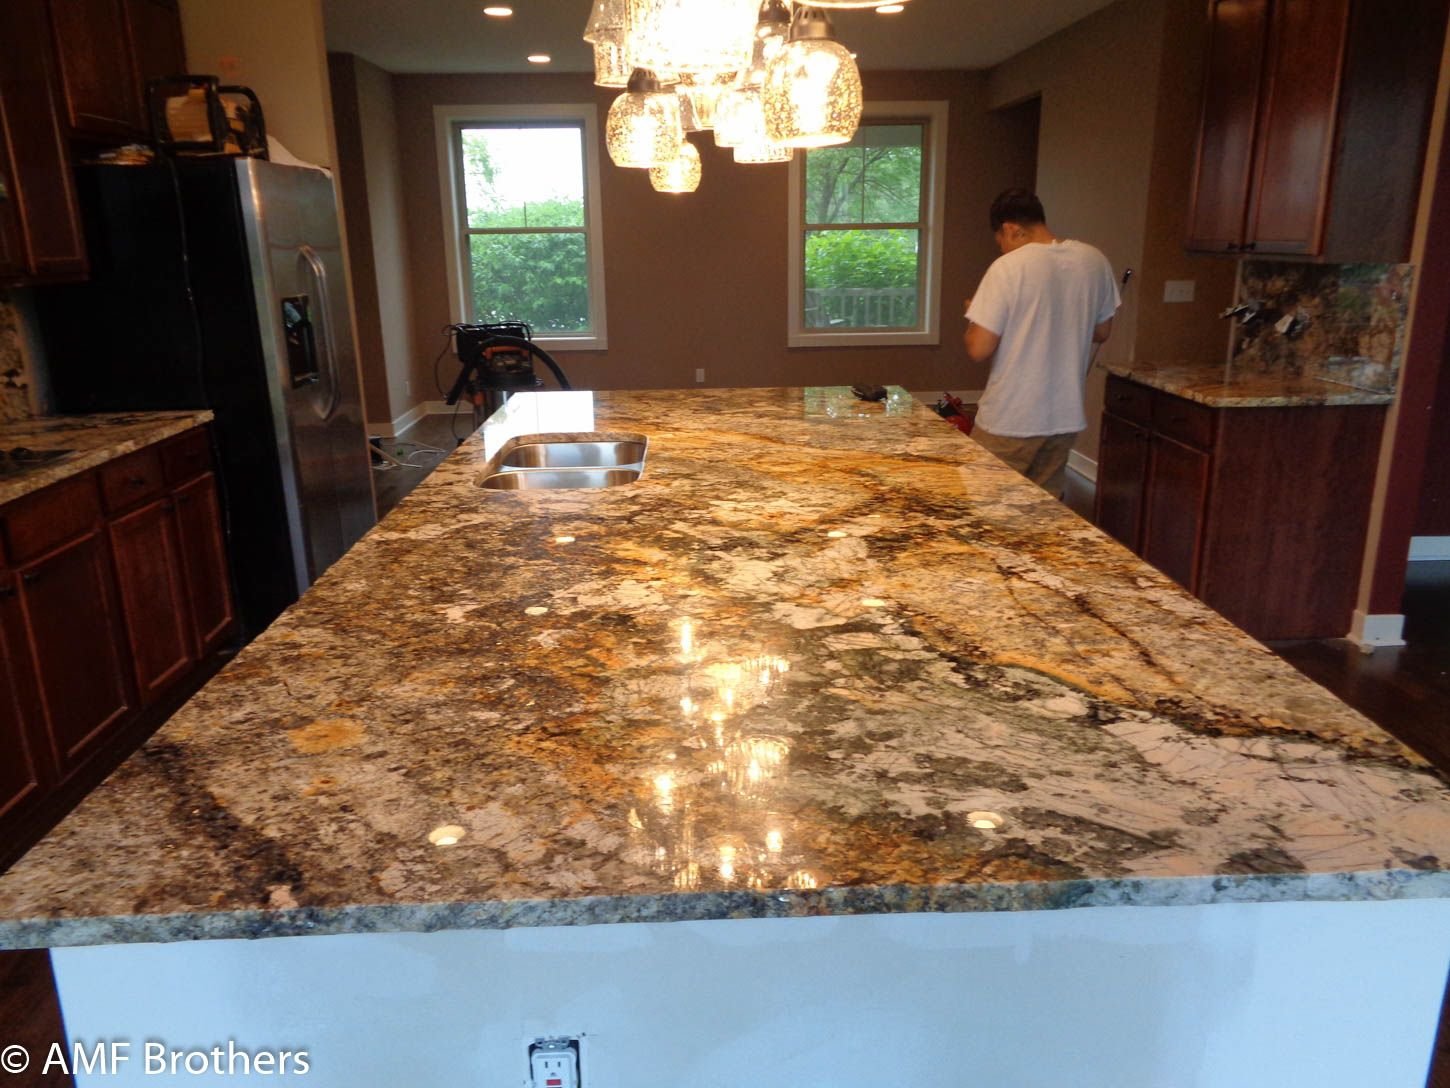 Genial ... Granite Countertops Barrington Il #18   Mascarello Granite Countertops  | Mascarello, Chiseled Edge ...